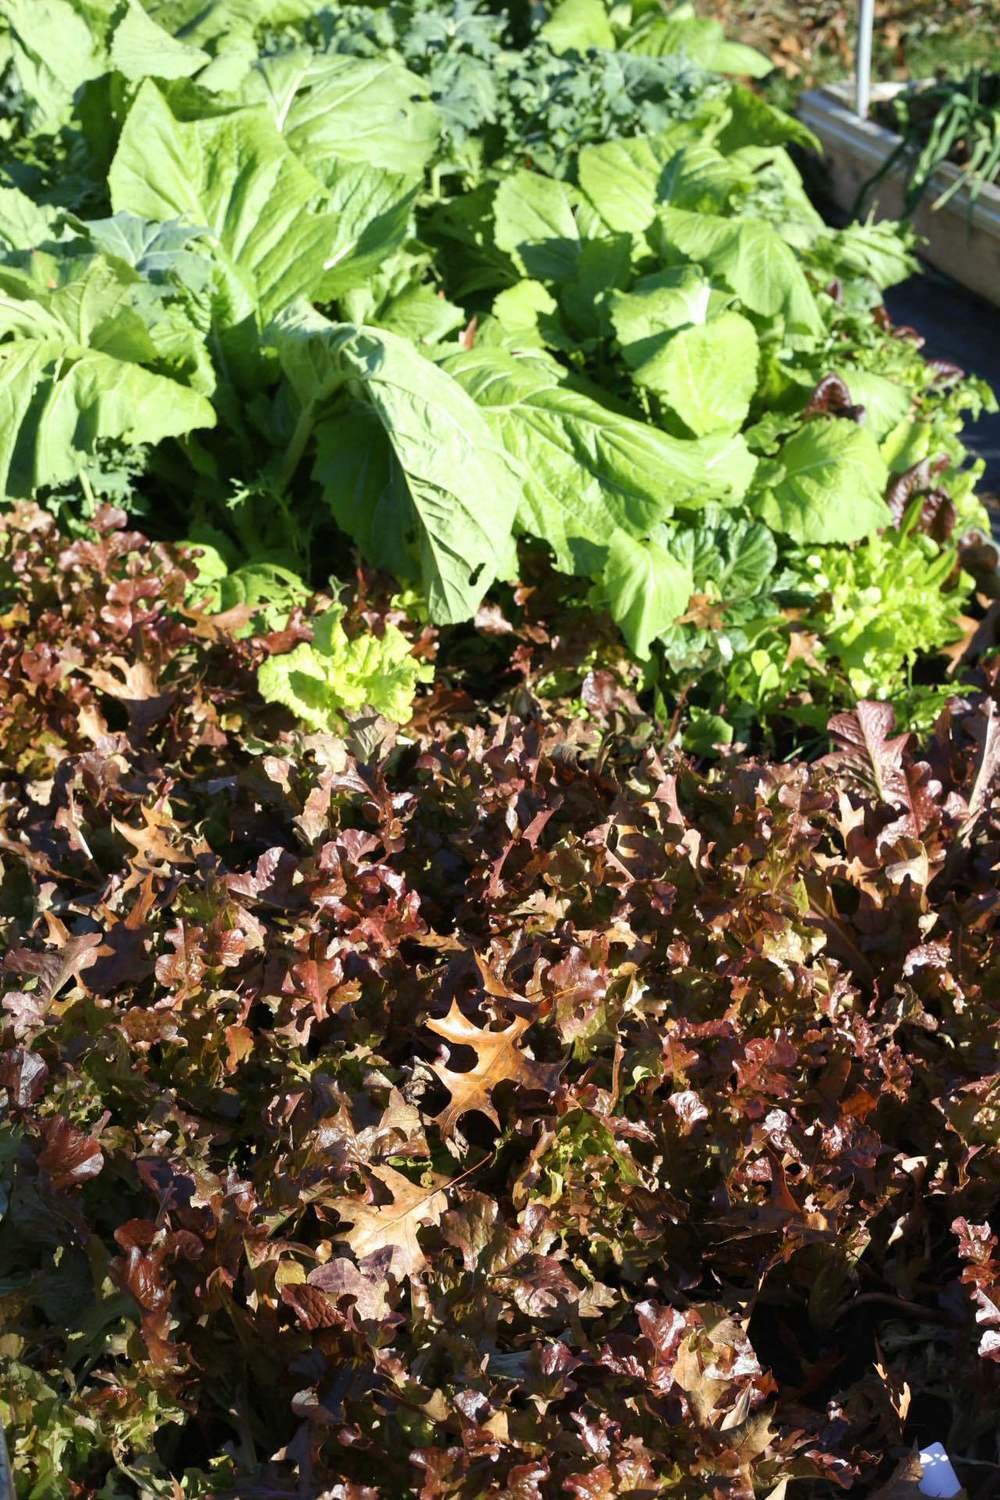 Lettuce and other greens shrug off frosts and light freezes.